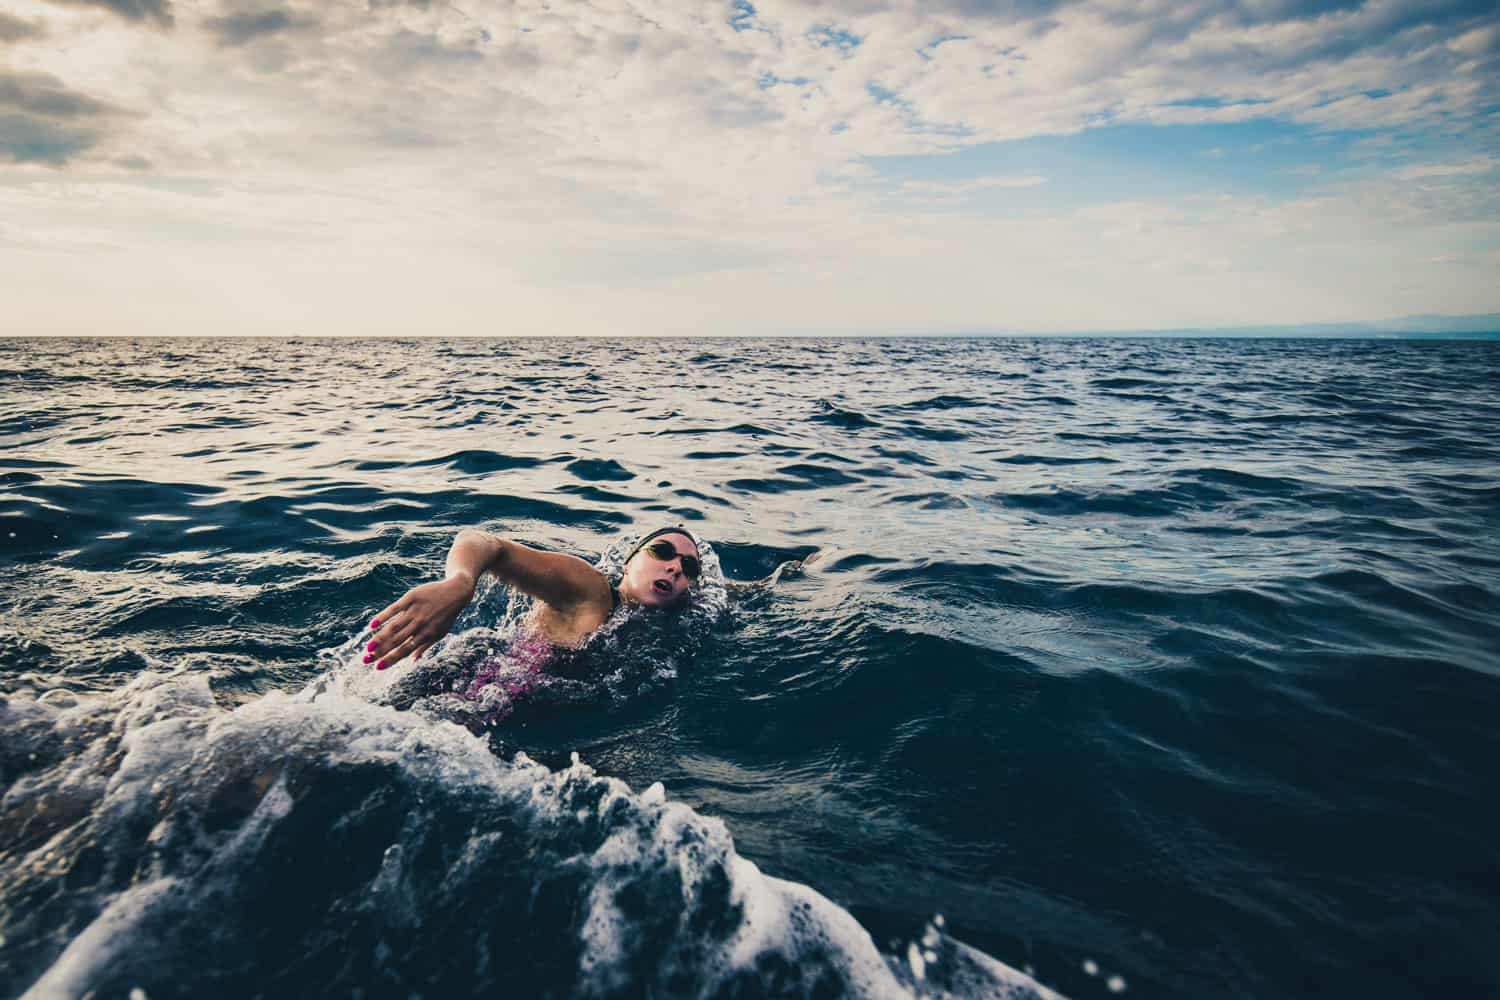 An open sea swimming athlete swimming on open waters